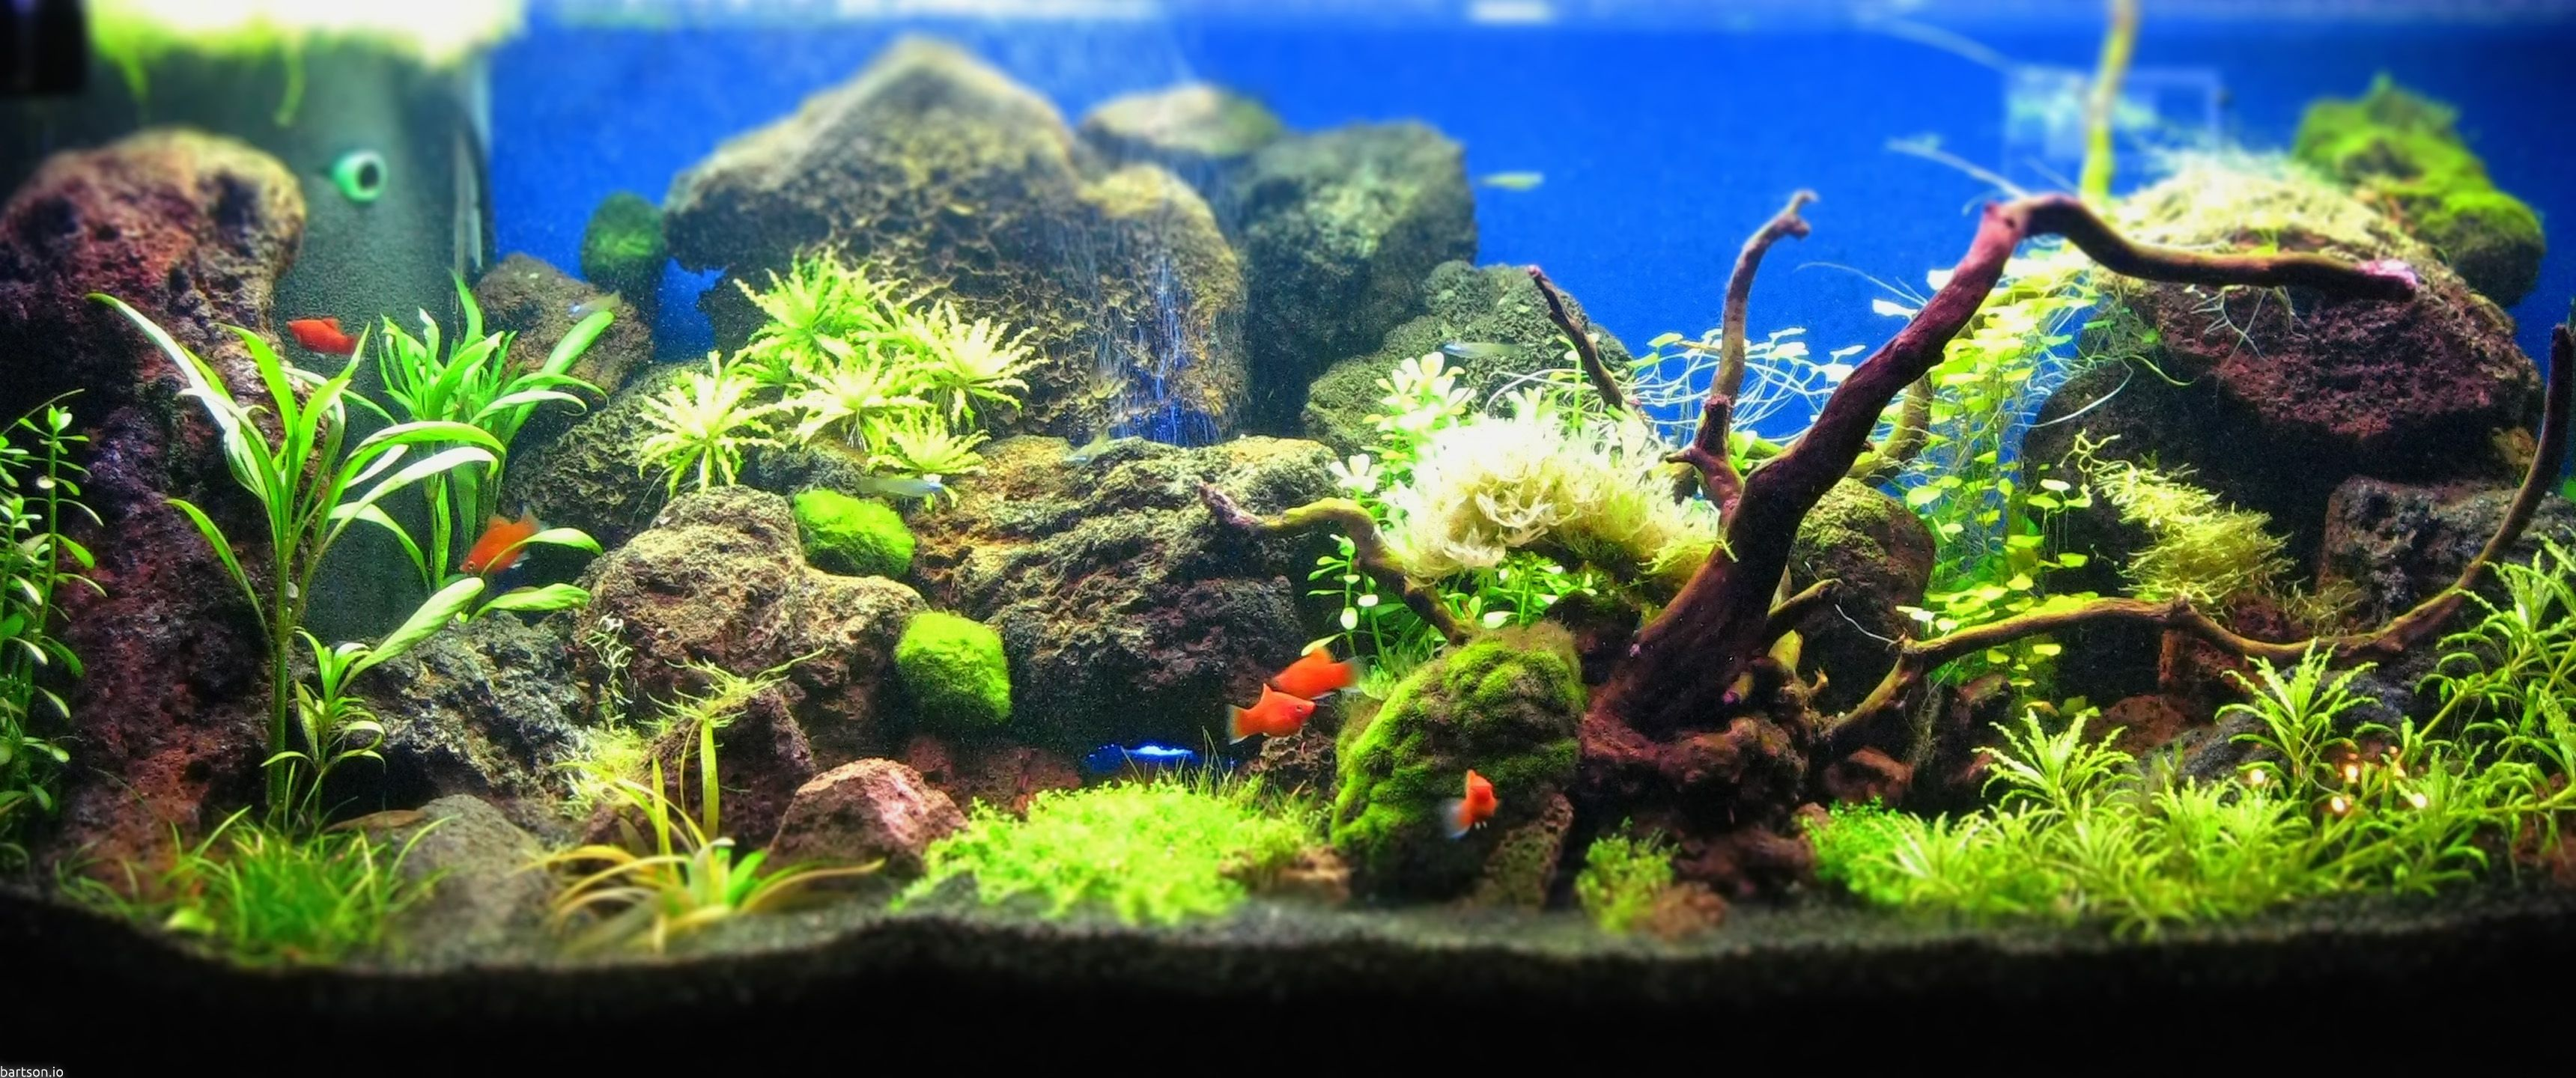 Aquascape Wallpapers Top Free Aquascape Backgrounds Wallpaperaccess